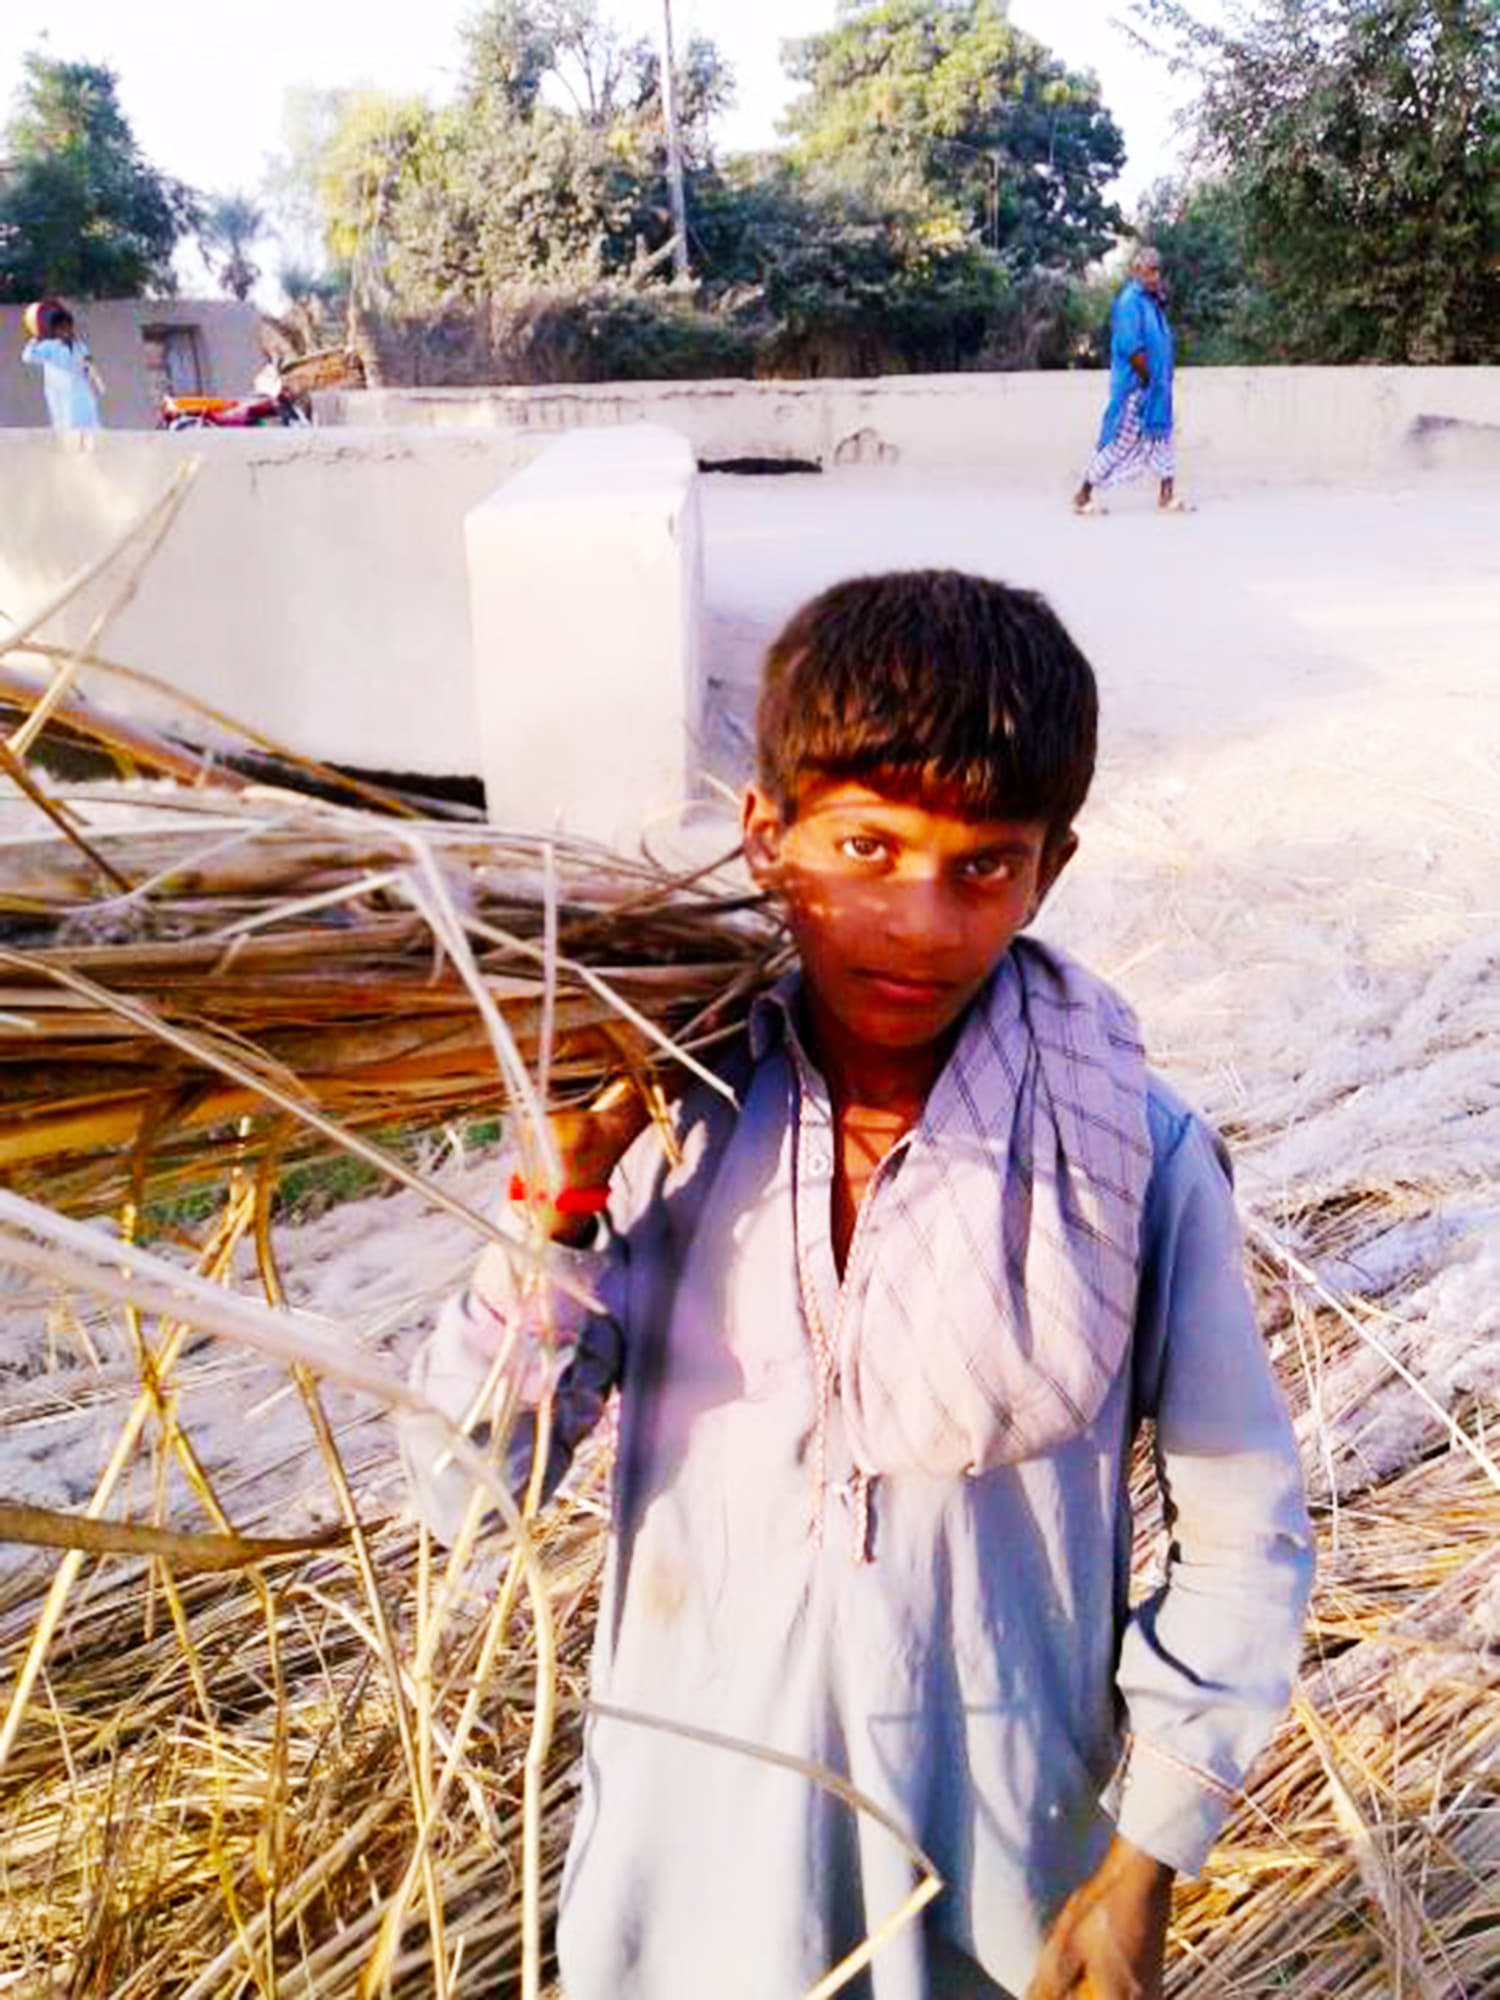 A young boy collects natural supplies to make chairs from the fields.